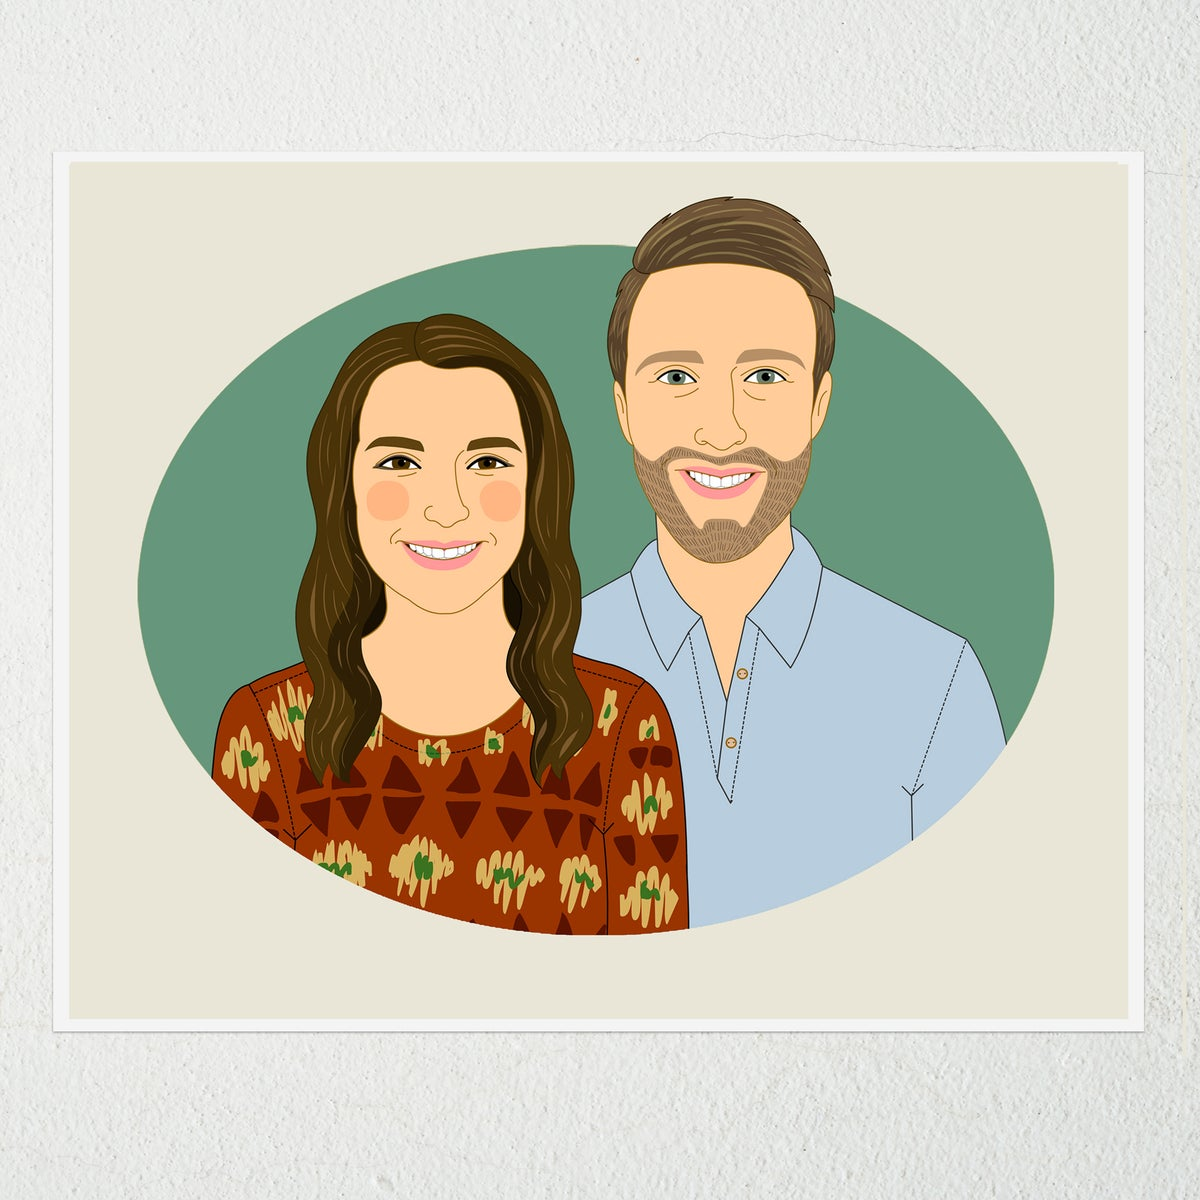 Image of Couple's Portrait from photo. 2 people.